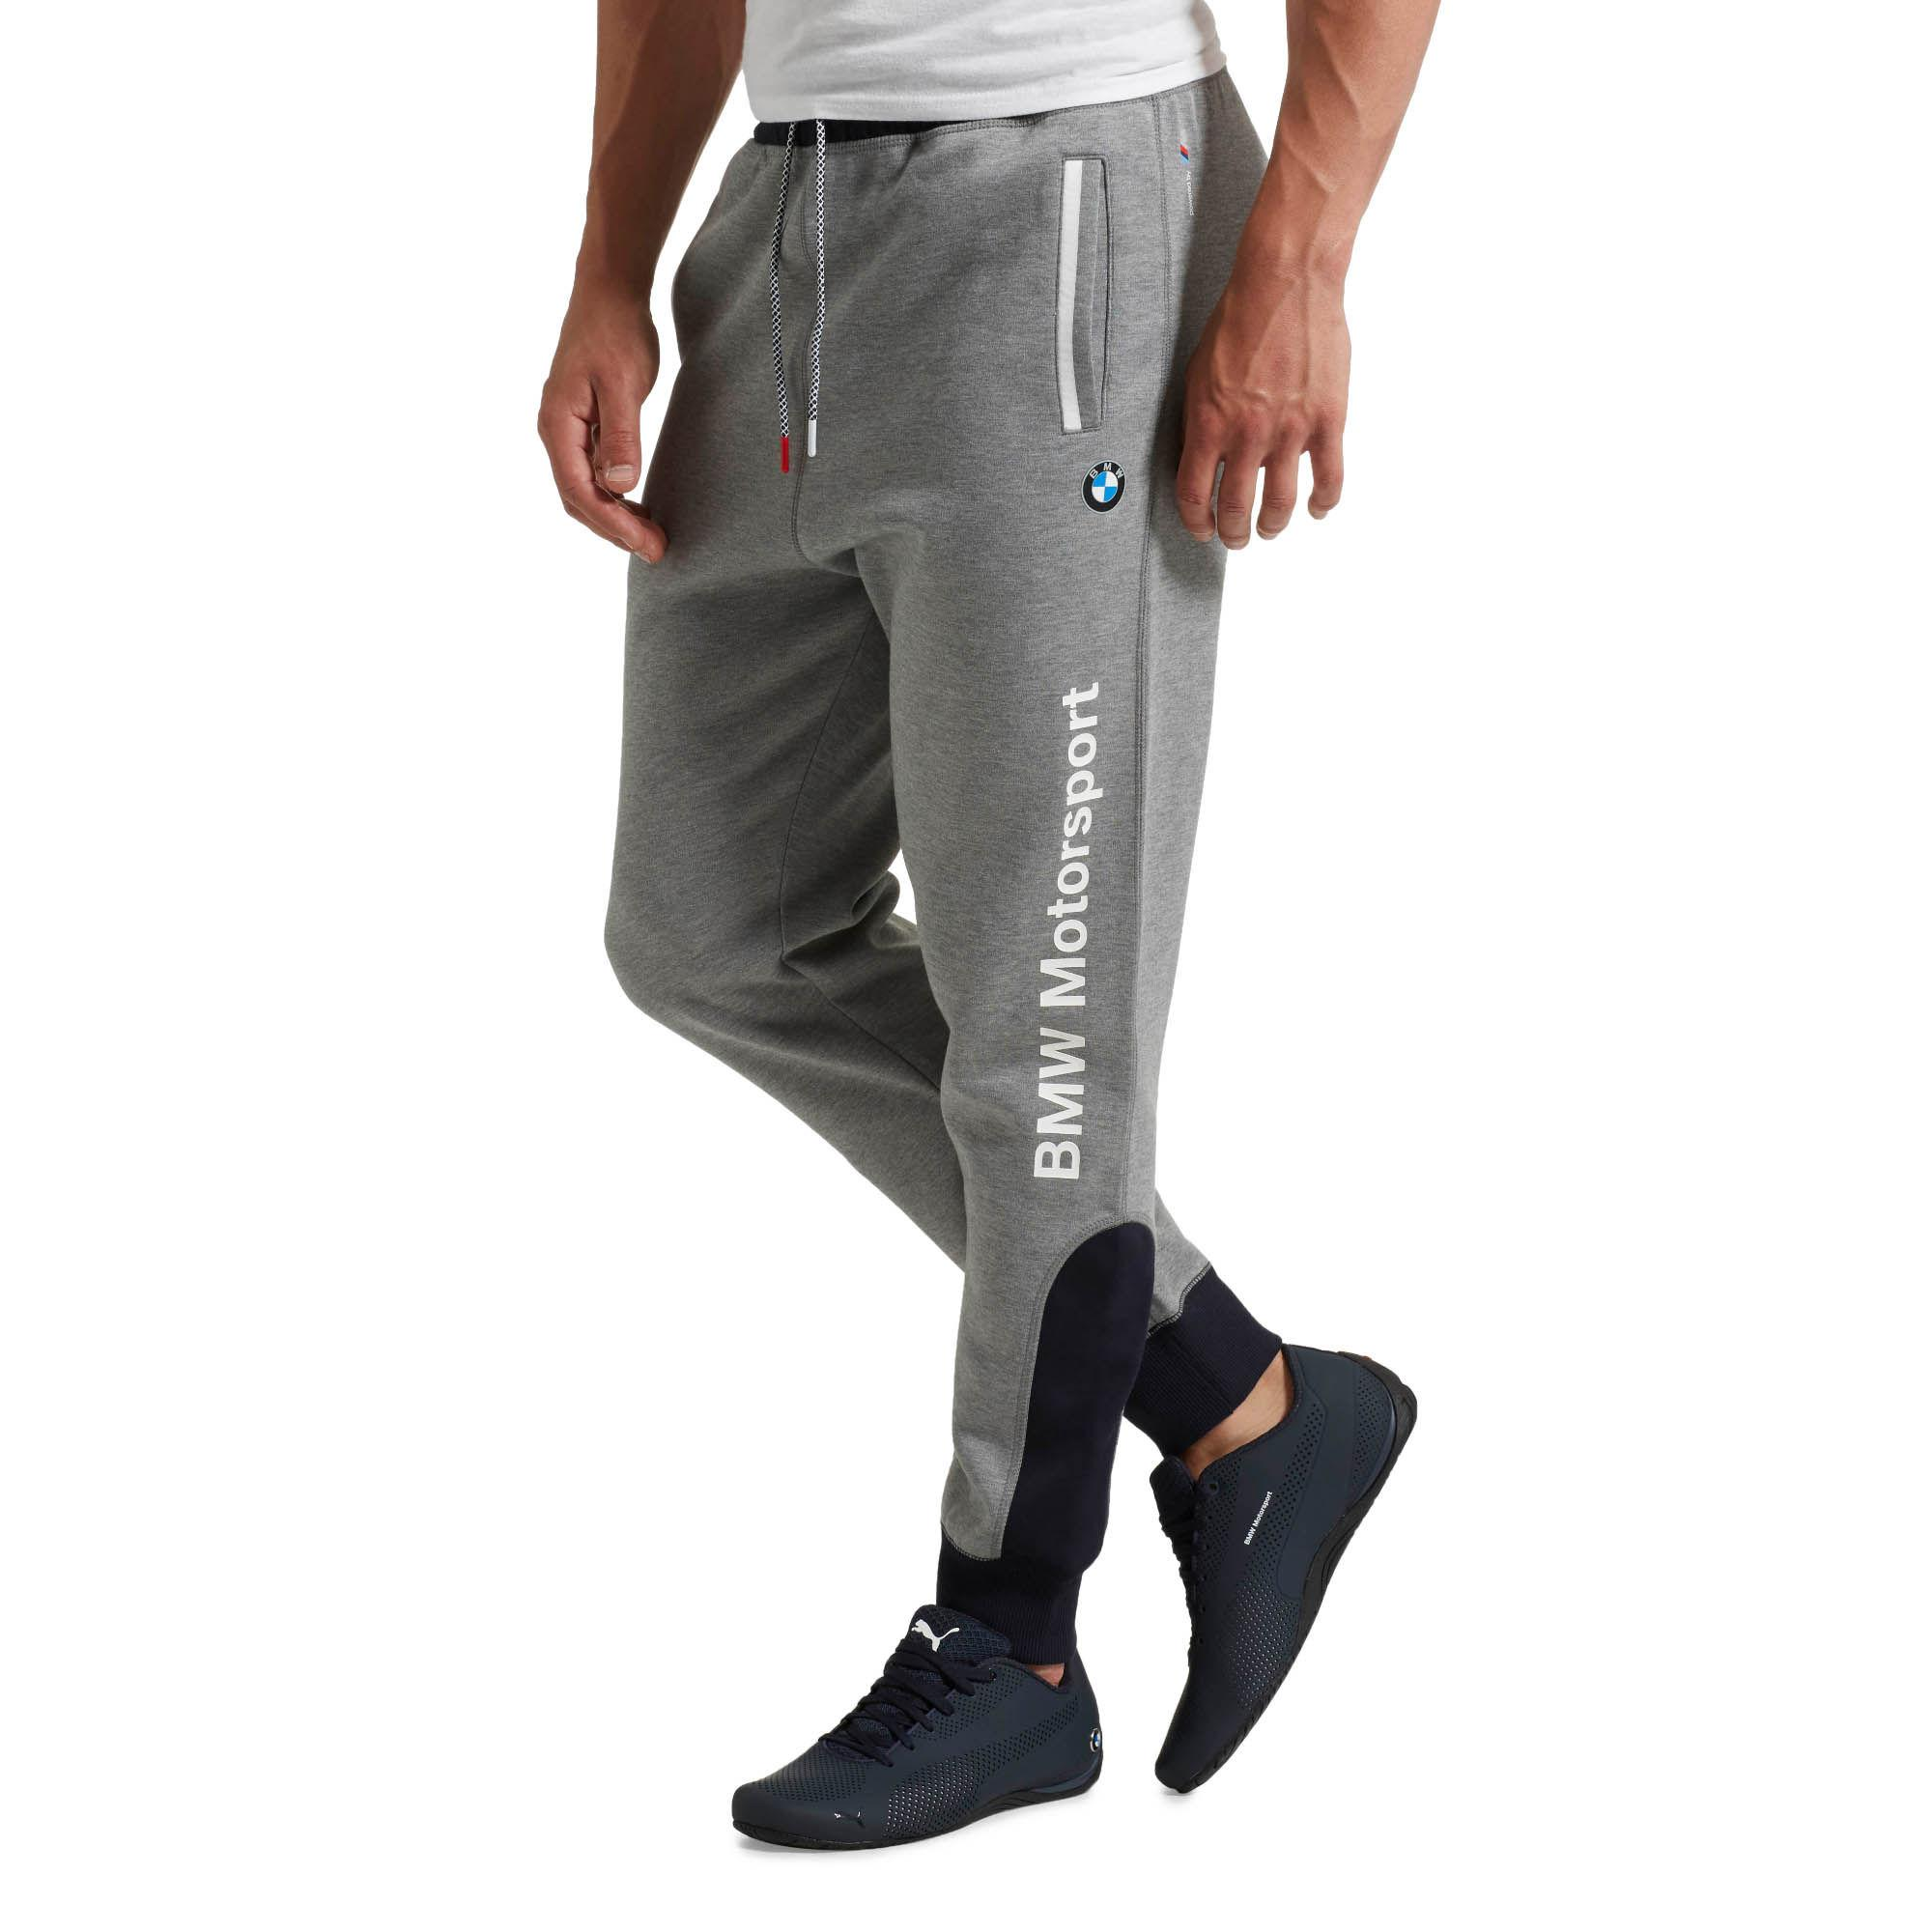 aefab6ef545d Bmw Motorsport Sweatpants - Bmw Foto and Picture In The Word